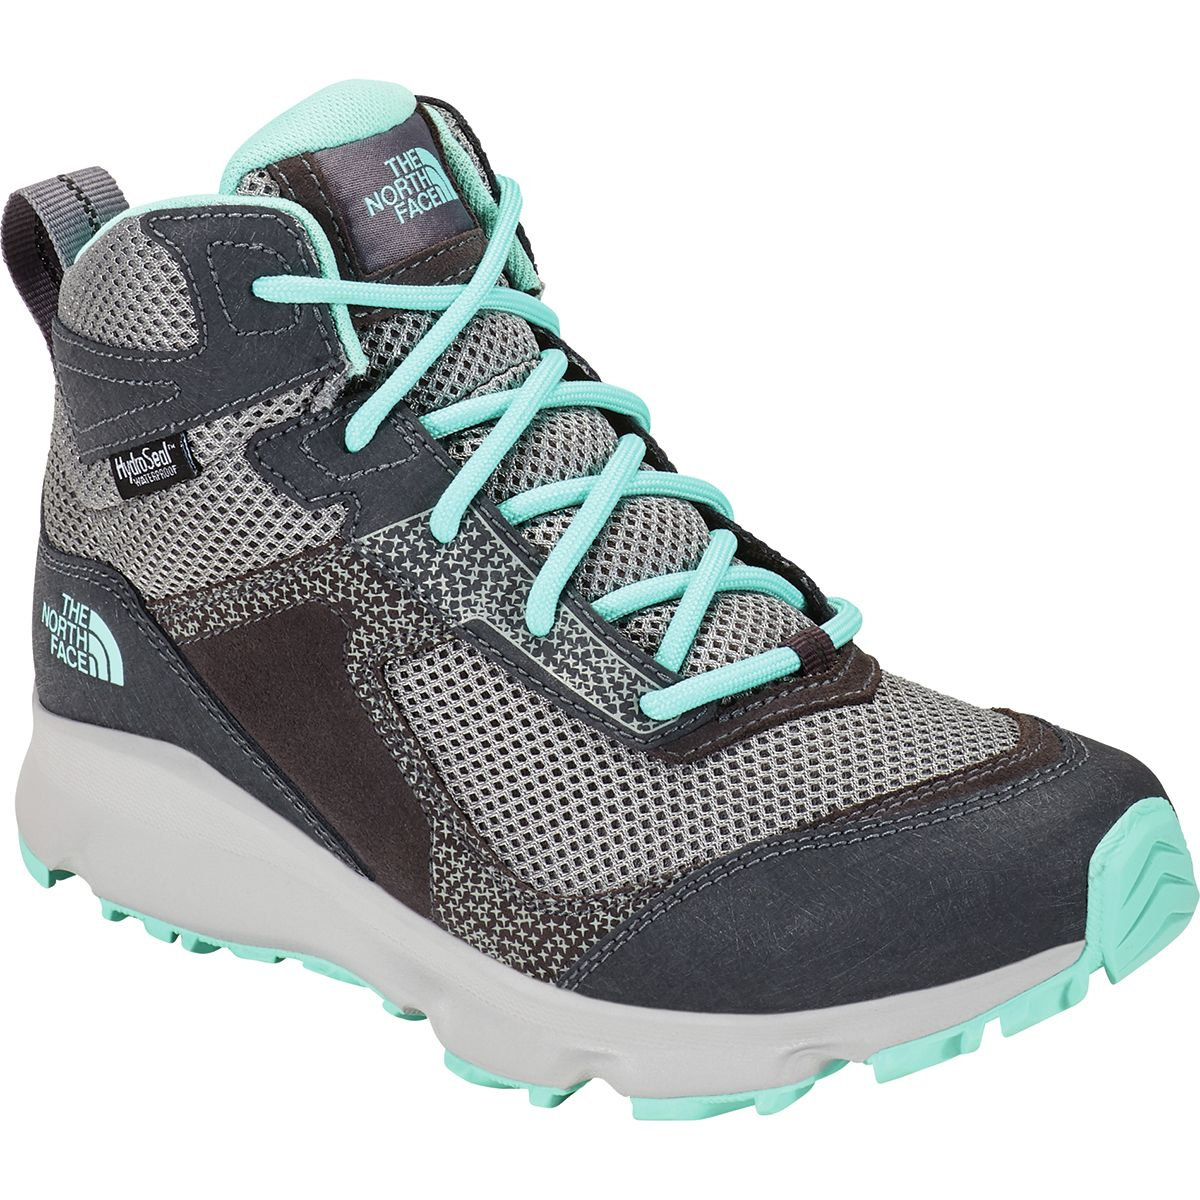 The North Face Hedgehog Hiker II Mid Waterproof